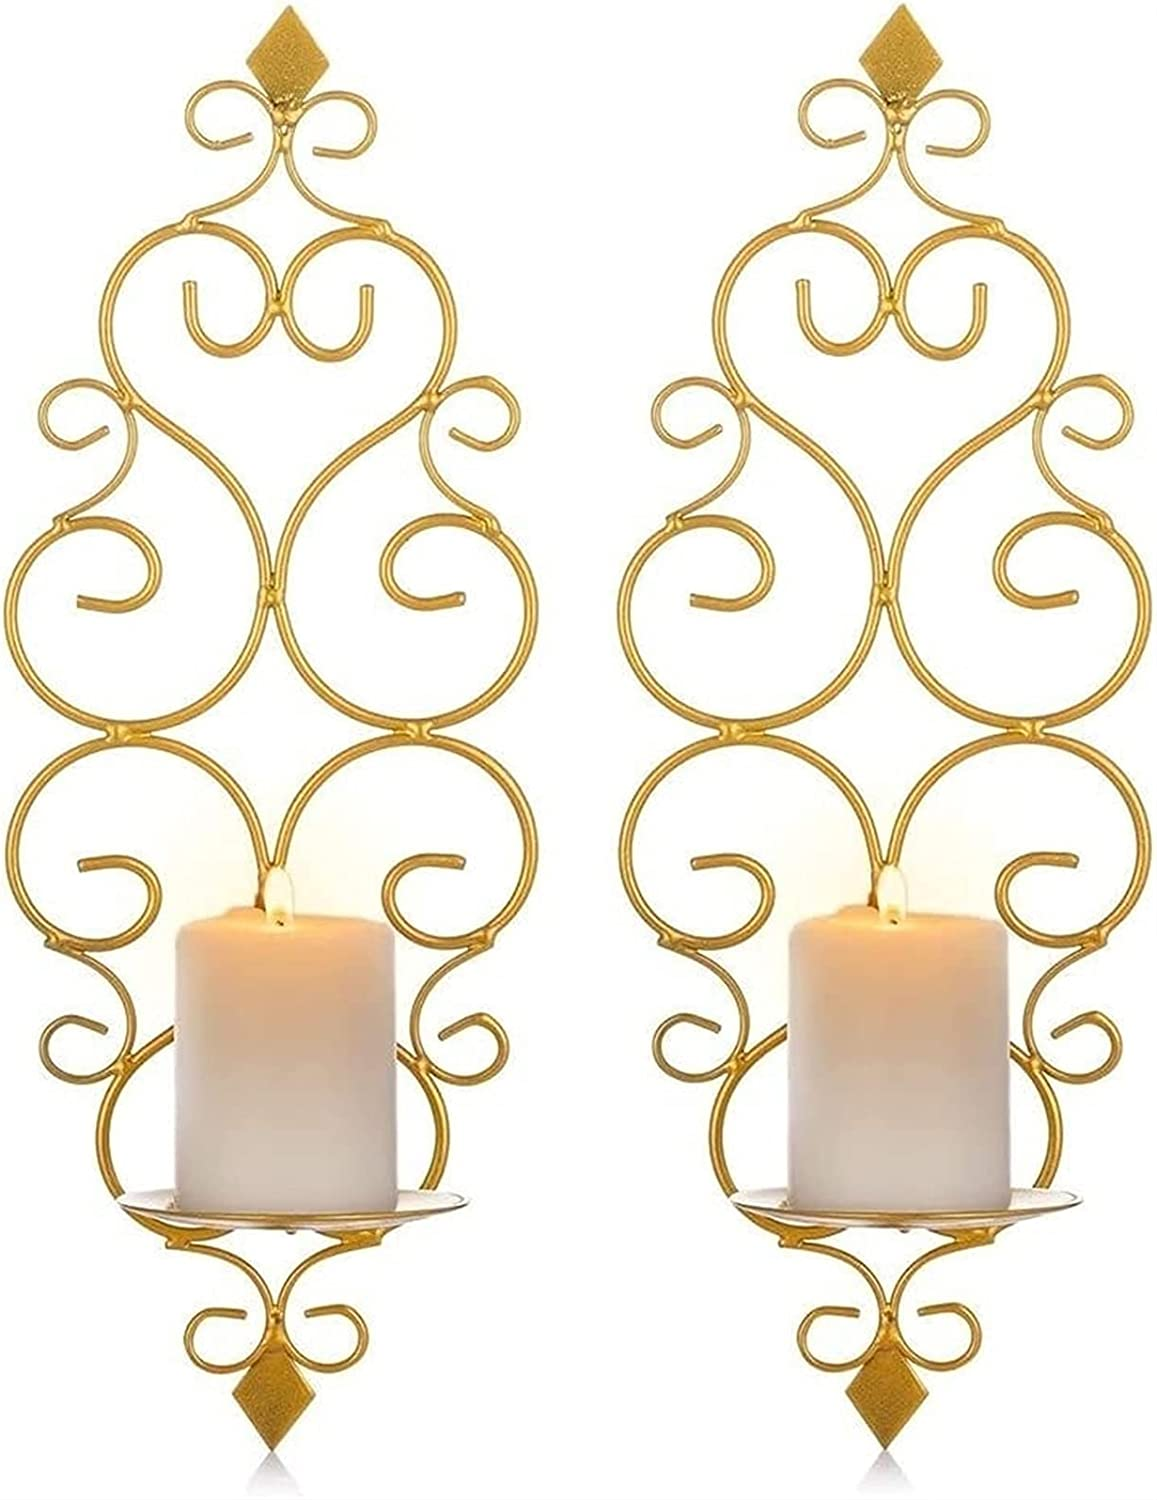 Wholesale low-pricing HMMN Mounted Pillar Candle Sconces Holder Iron Sconc Wall